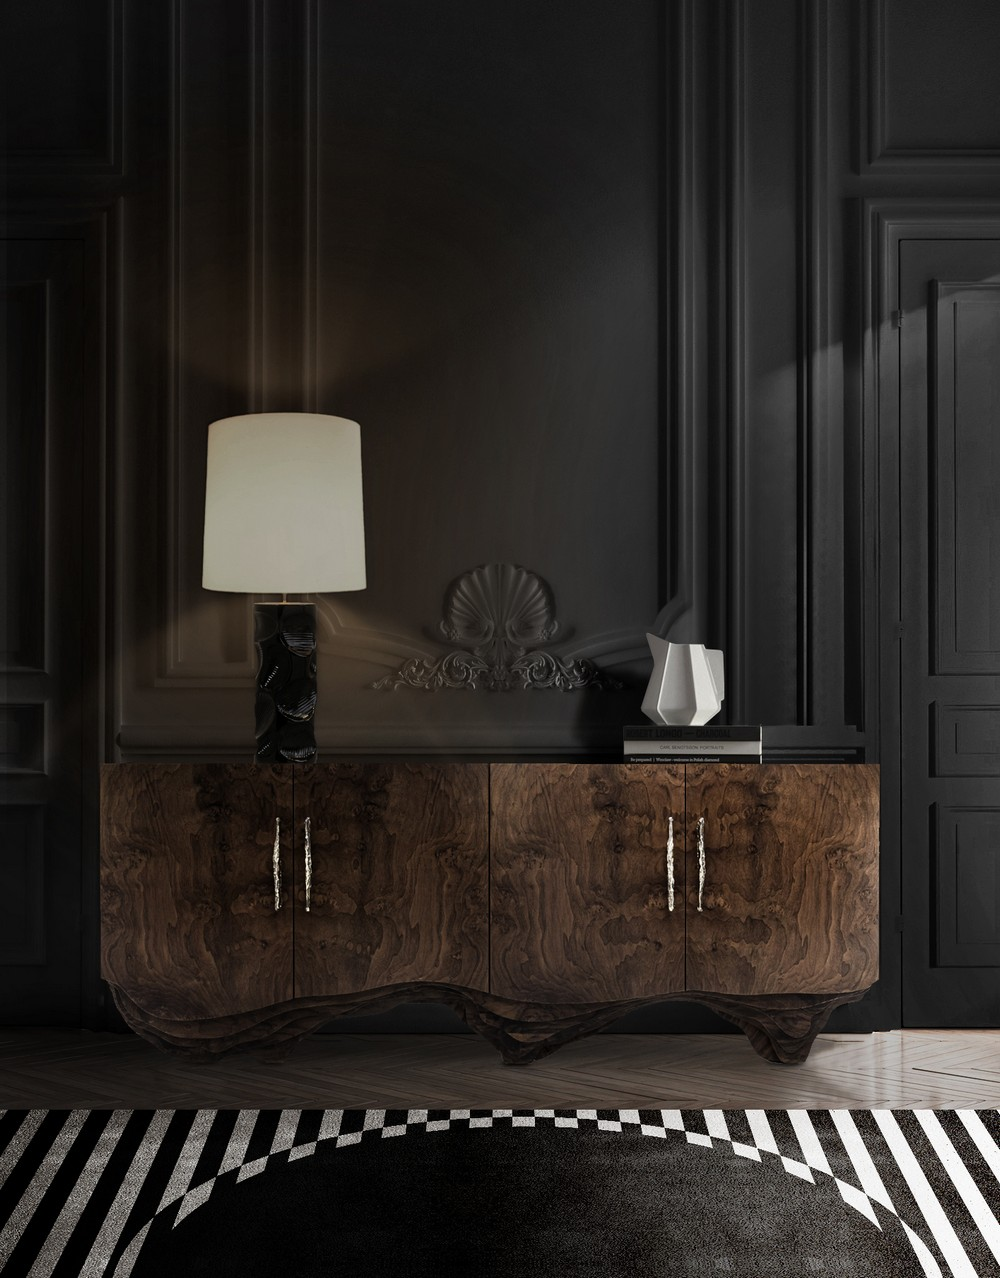 25 Luxury Sideboards Consoles to Consider for a Bold Design Concept 1 luxury sideboards 25 Luxury Sideboards & Consoles to Consider for a Bold Design Concept 25 Luxury Sideboards Consoles to Consider for a Bold Design Concept 1